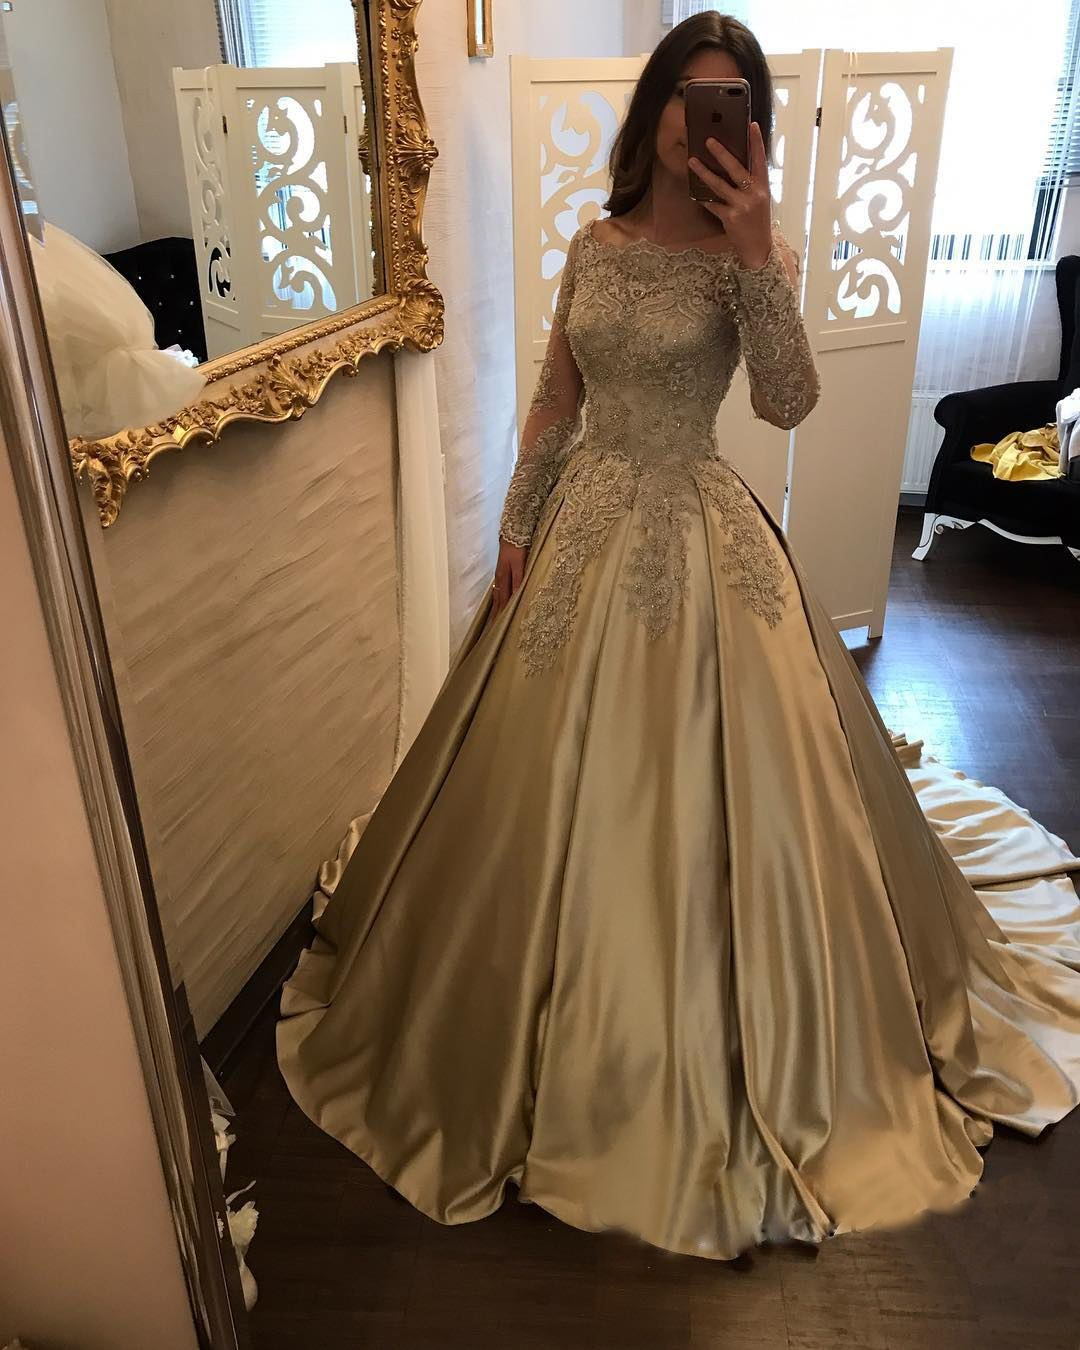 Champagne gown off shoulders long sleeves ball gown perfect